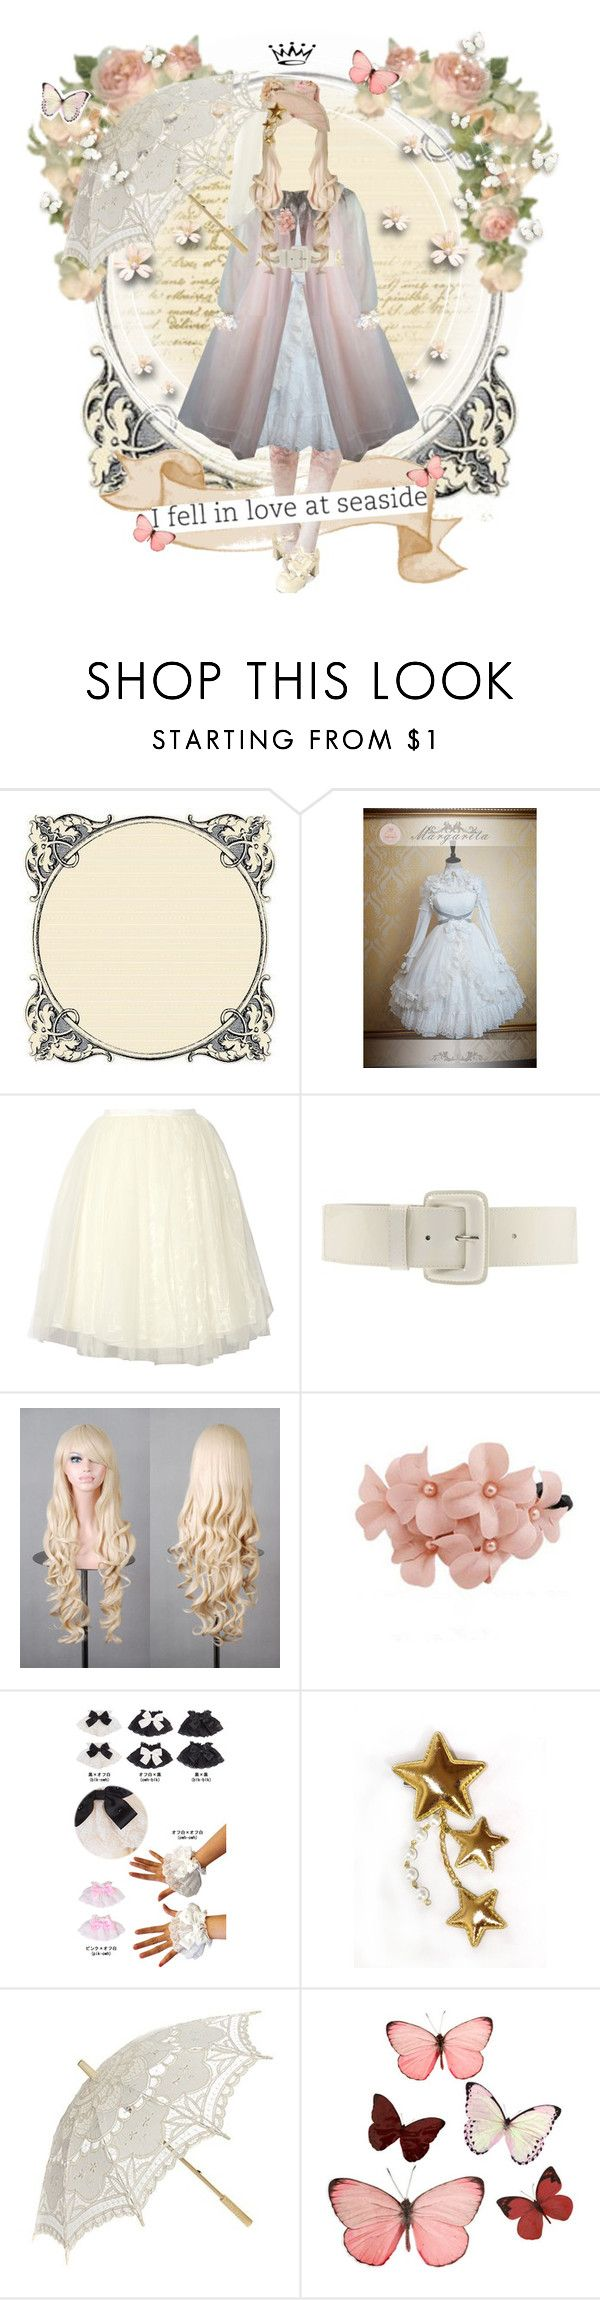 """""""The Pink Pirate Princess"""" by koneji ❤ liked on Polyvore featuring Alice + Olivia, The 2nd Skin Co., Bodyline, Leisureland, H&M, women's clothing, women, female, woman and misses"""